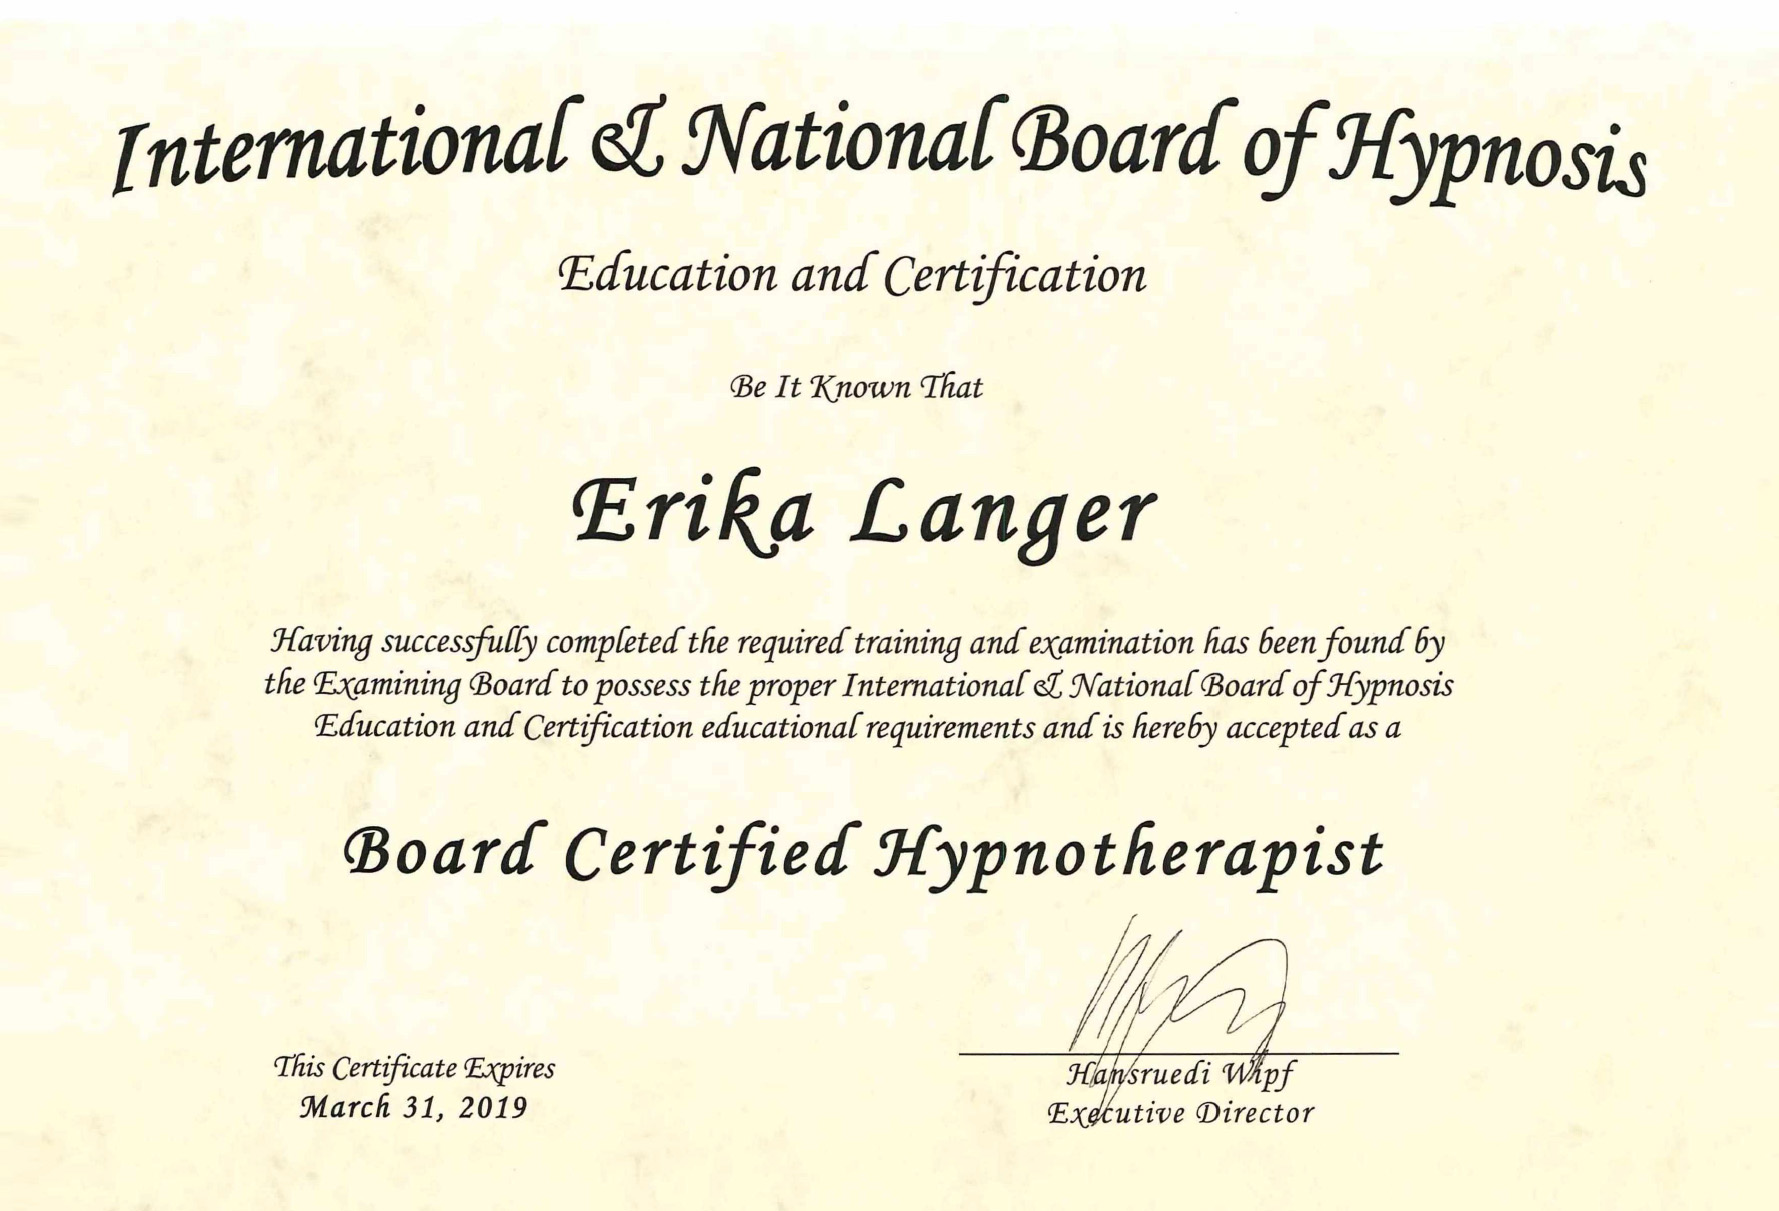 Erika Langer - Zertifikat International & National Board of Hypnosis